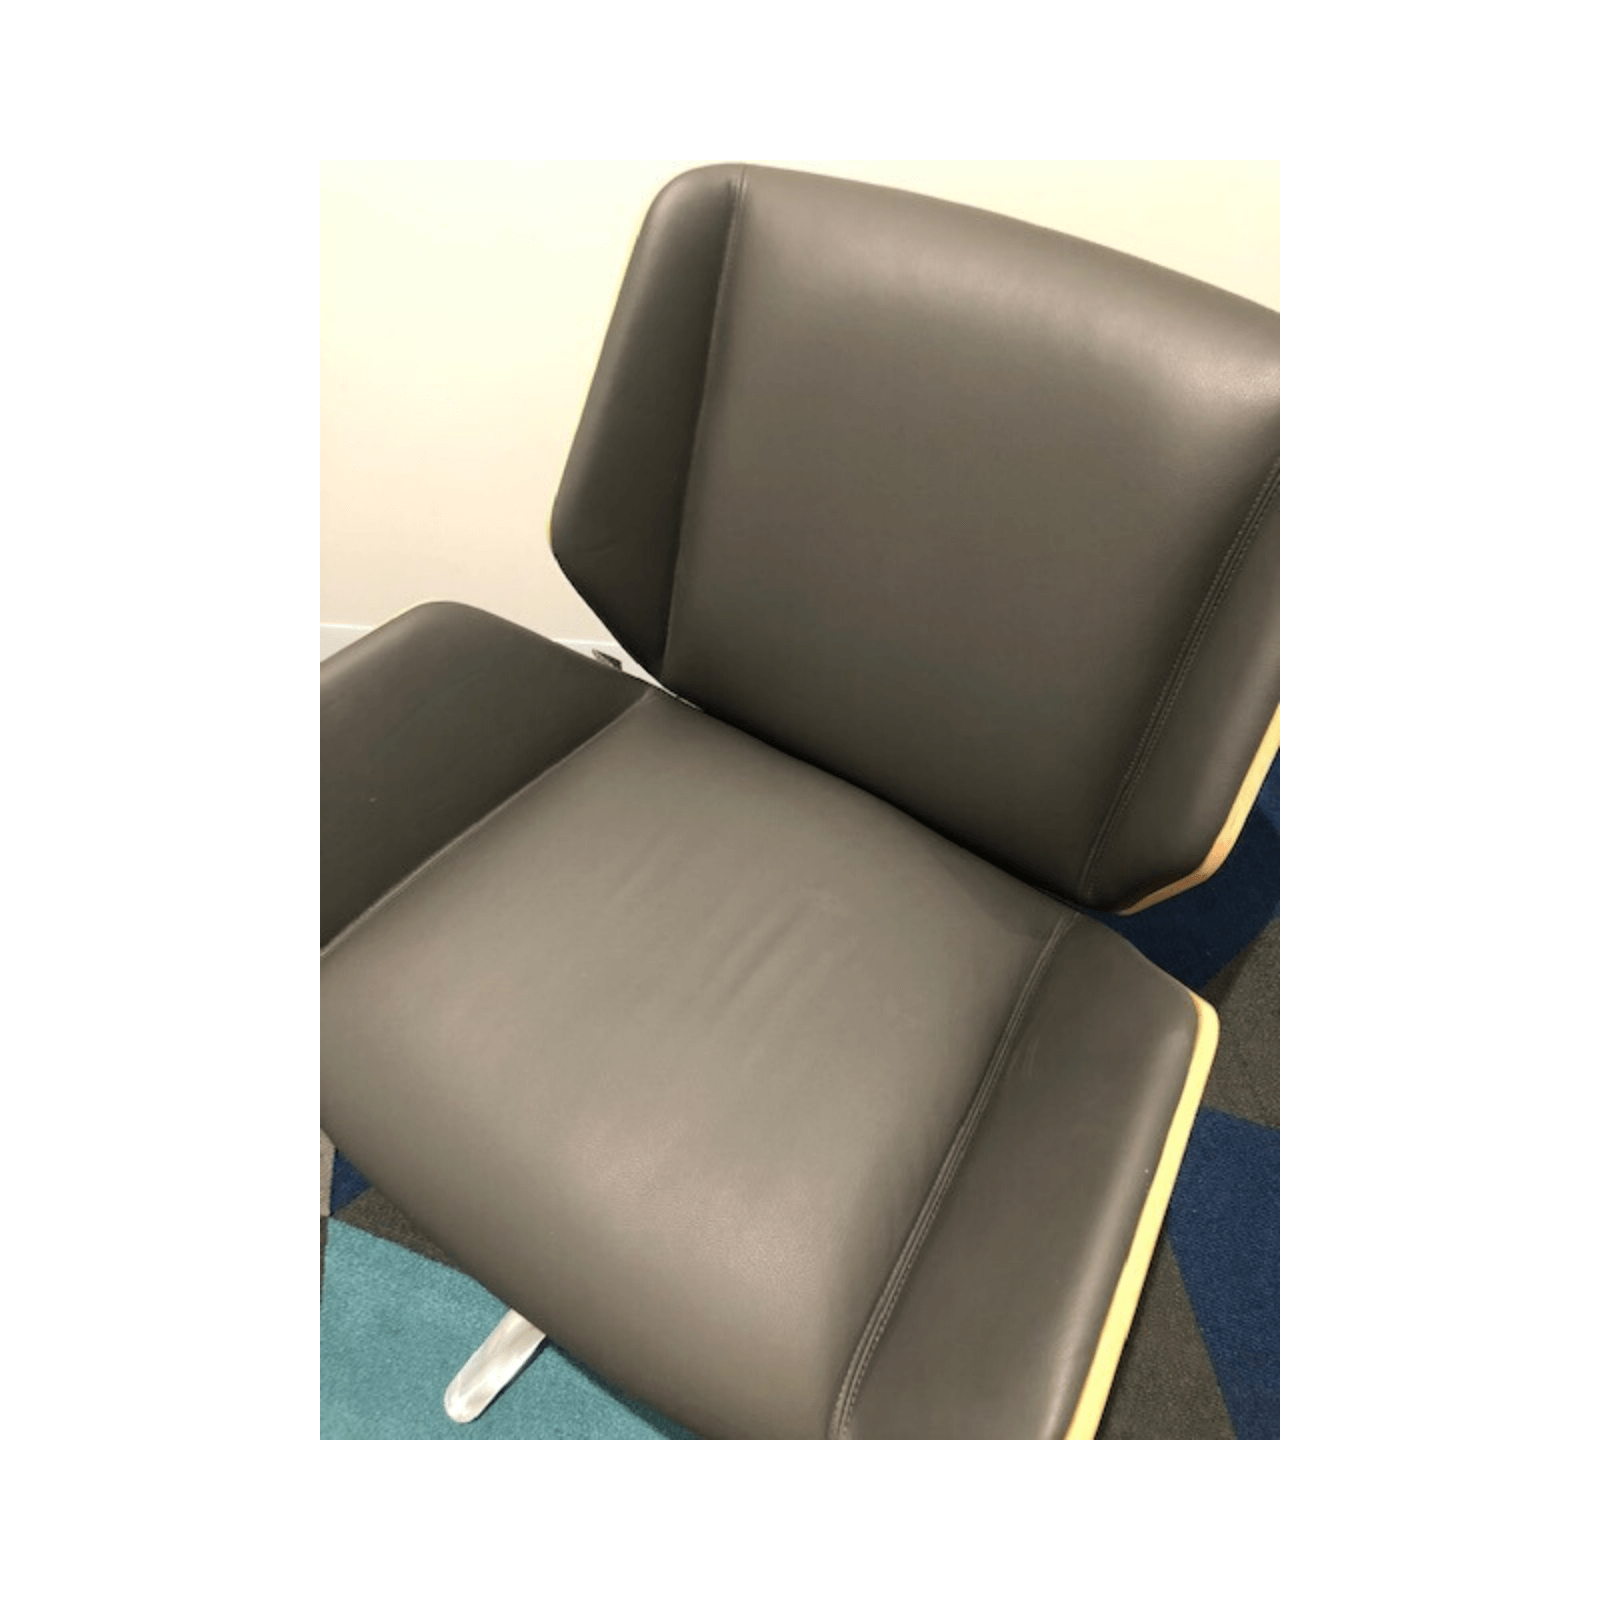 Boss Design Kruze Office chair 3